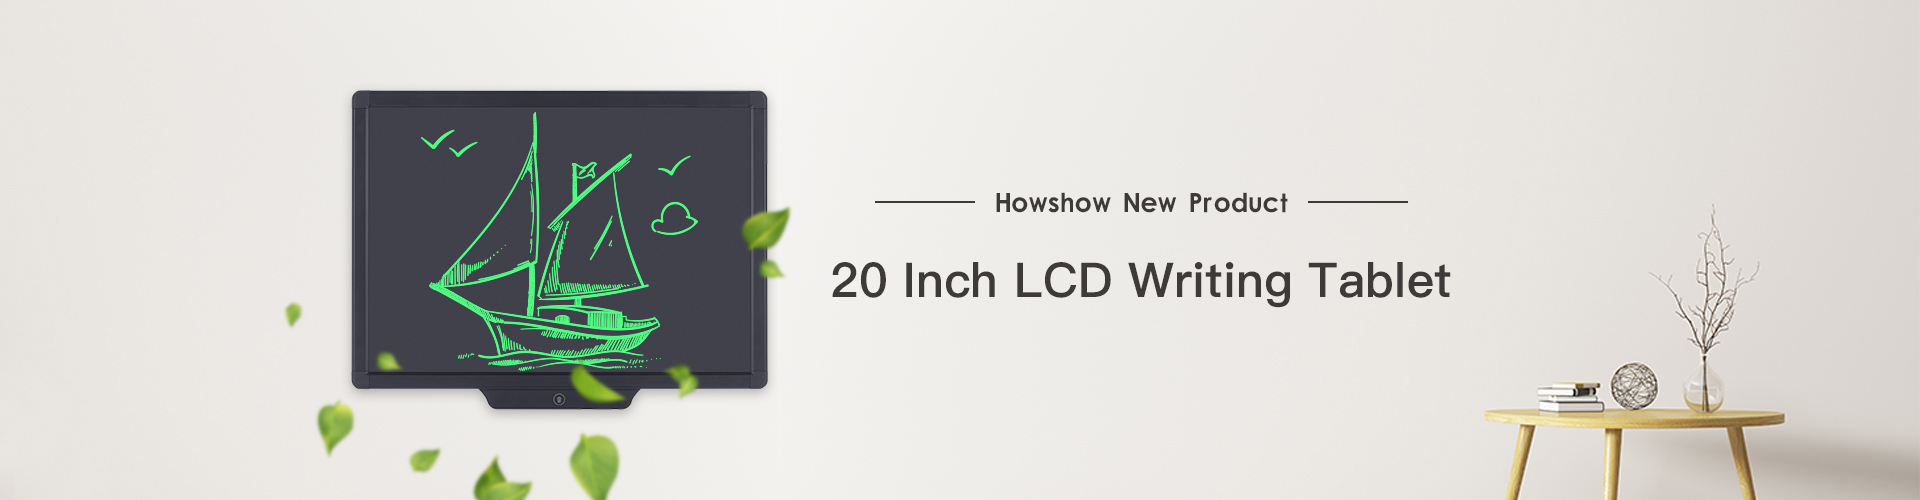 Howshow New Product : 20 Inch LCD writing tablet